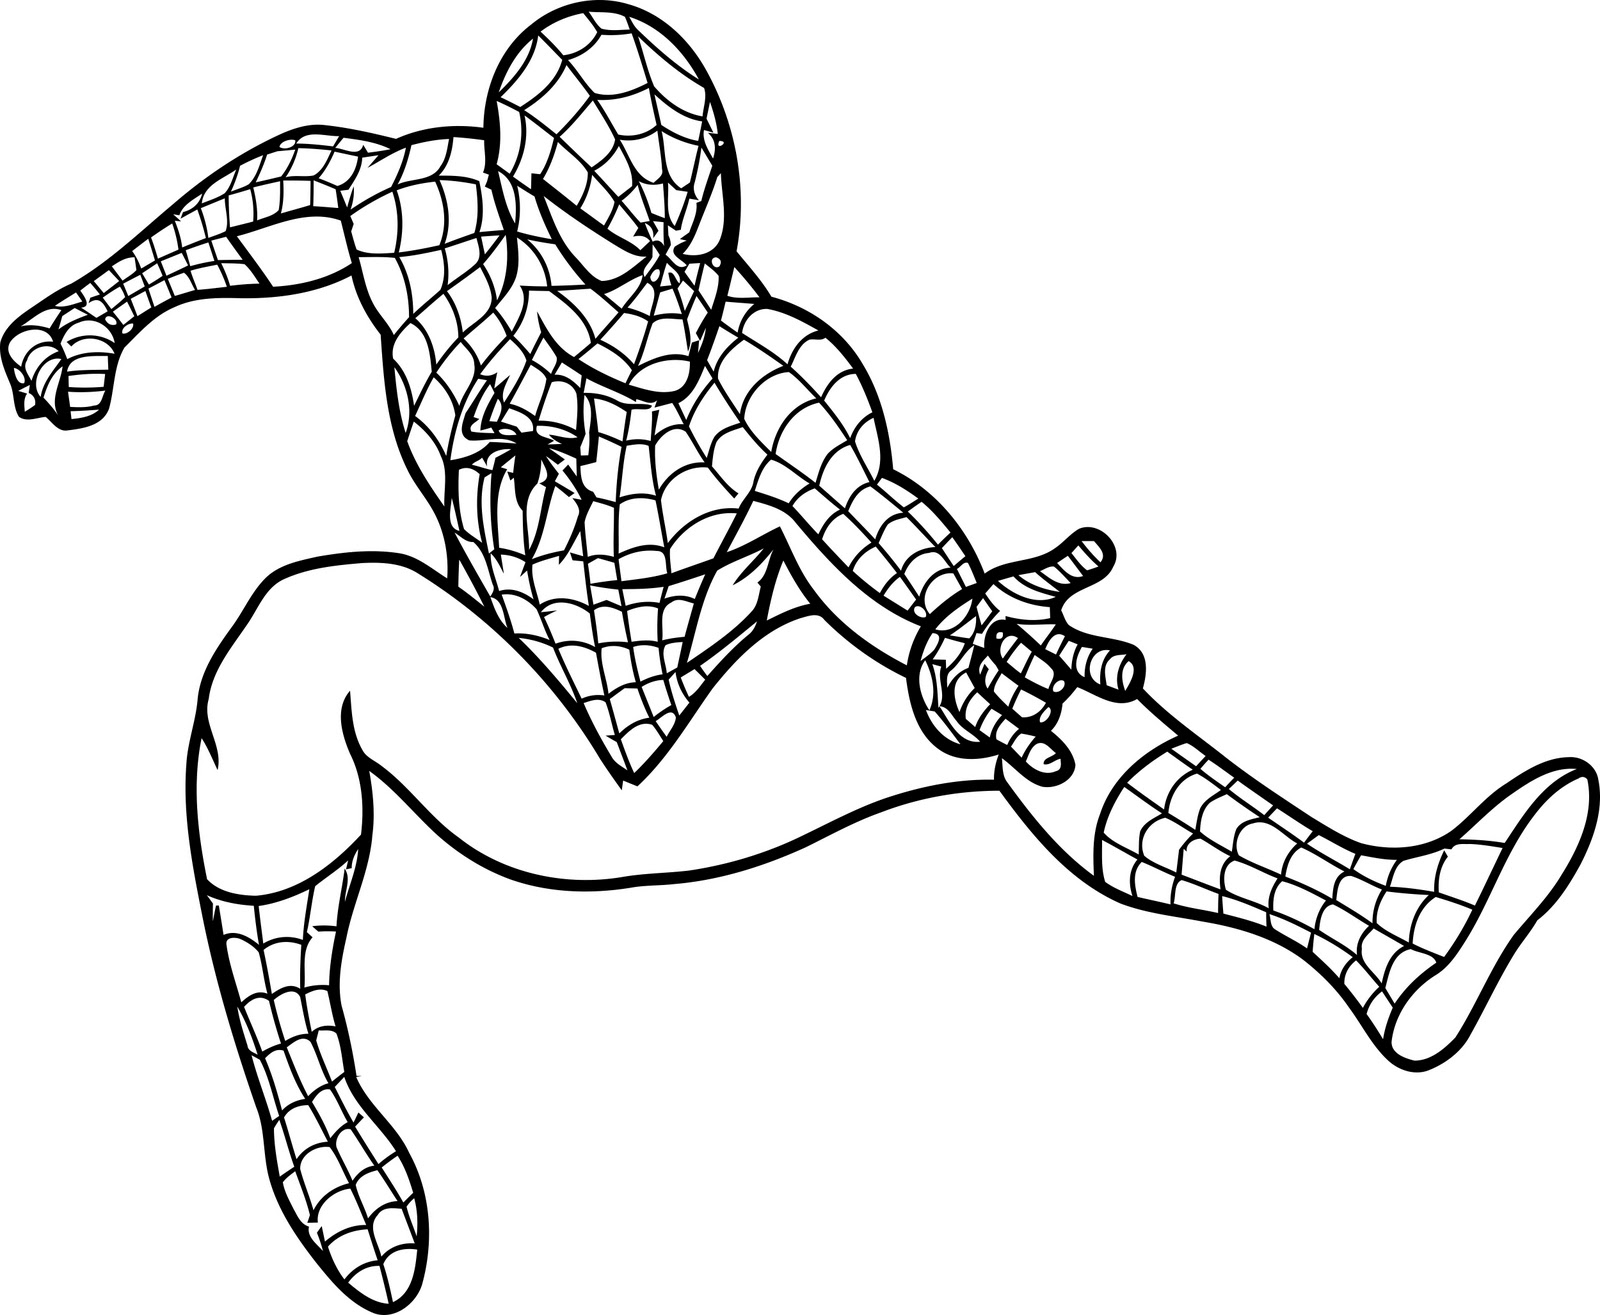 coloring spiderman spiderman coloring pages the sun flower pages spiderman coloring 1 1